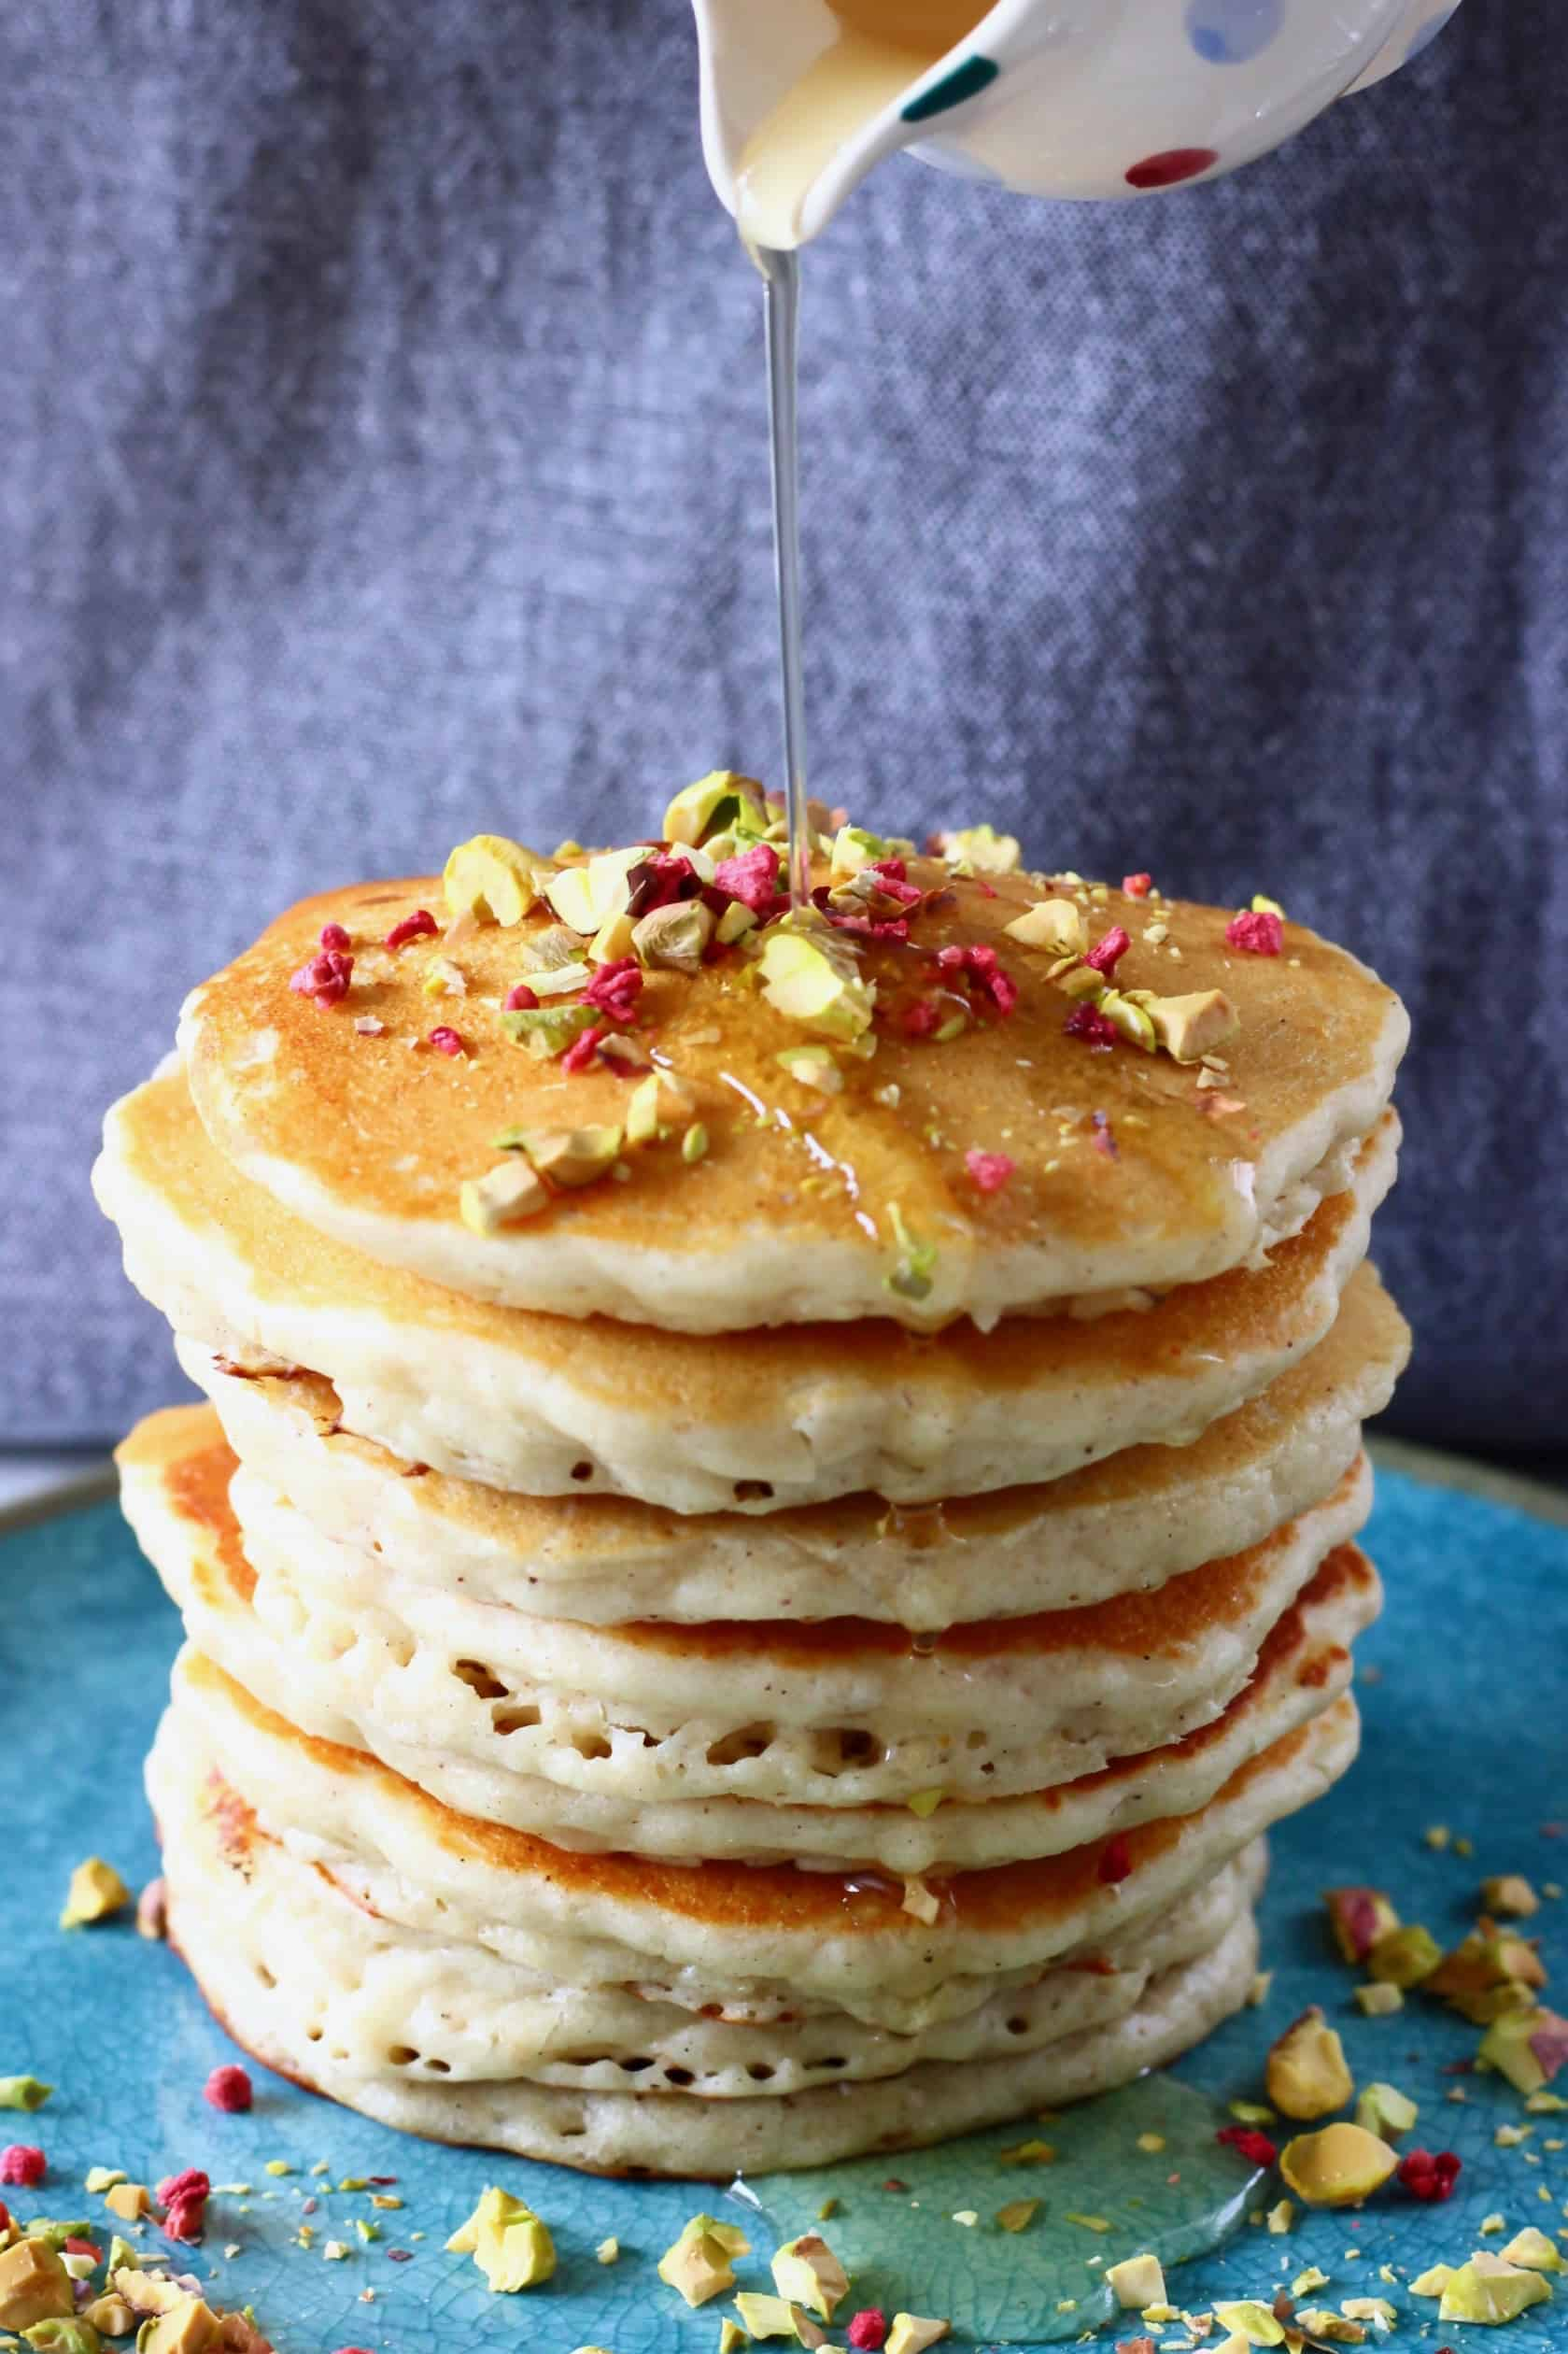 A stack of gluten-free vegan oatmeal pancakes on a plate with syrup being poured over the top from a small jug